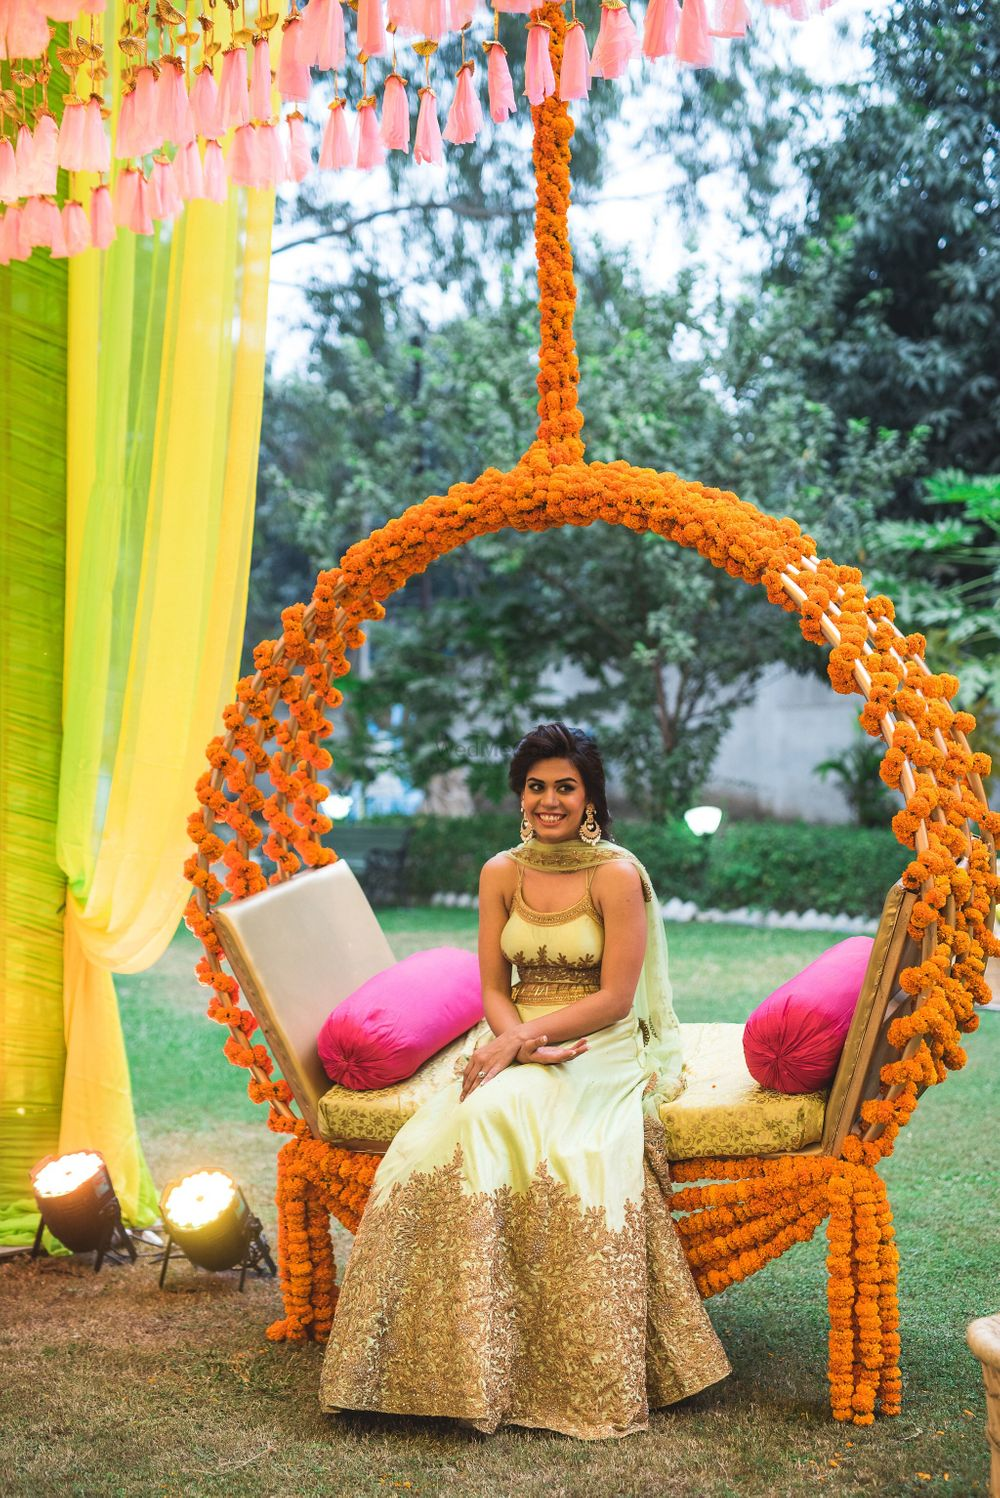 Photo of Mehendi bridal seat decor with genda phool